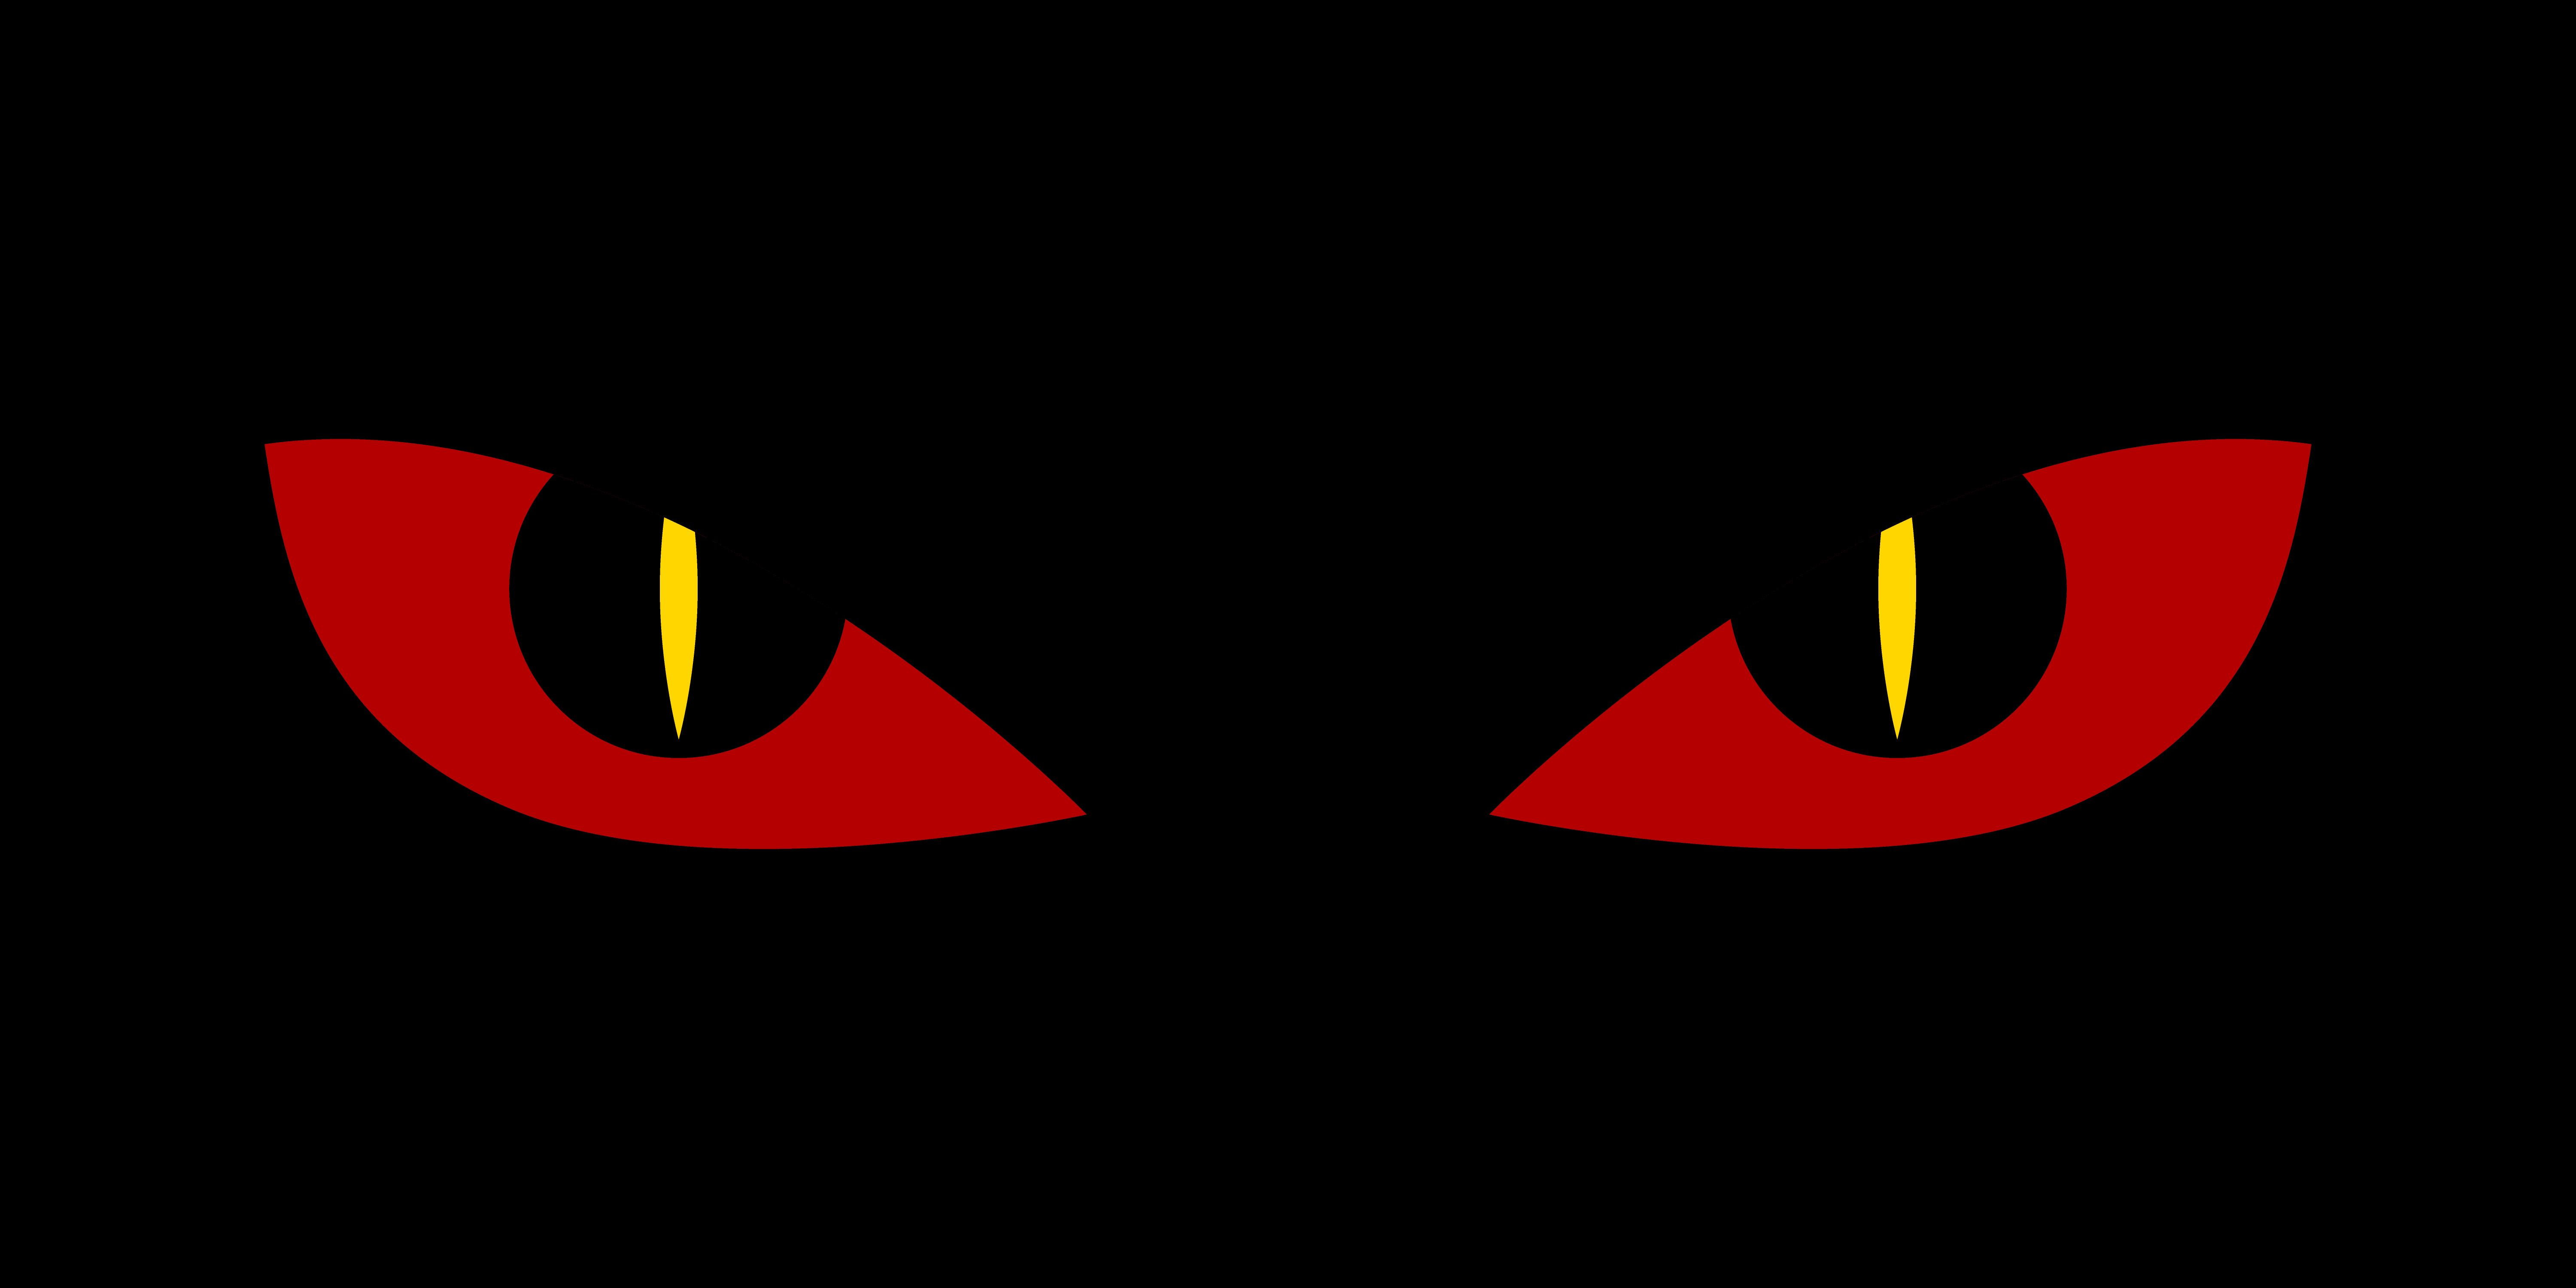 You can\'t hide your snake glowing eyes.